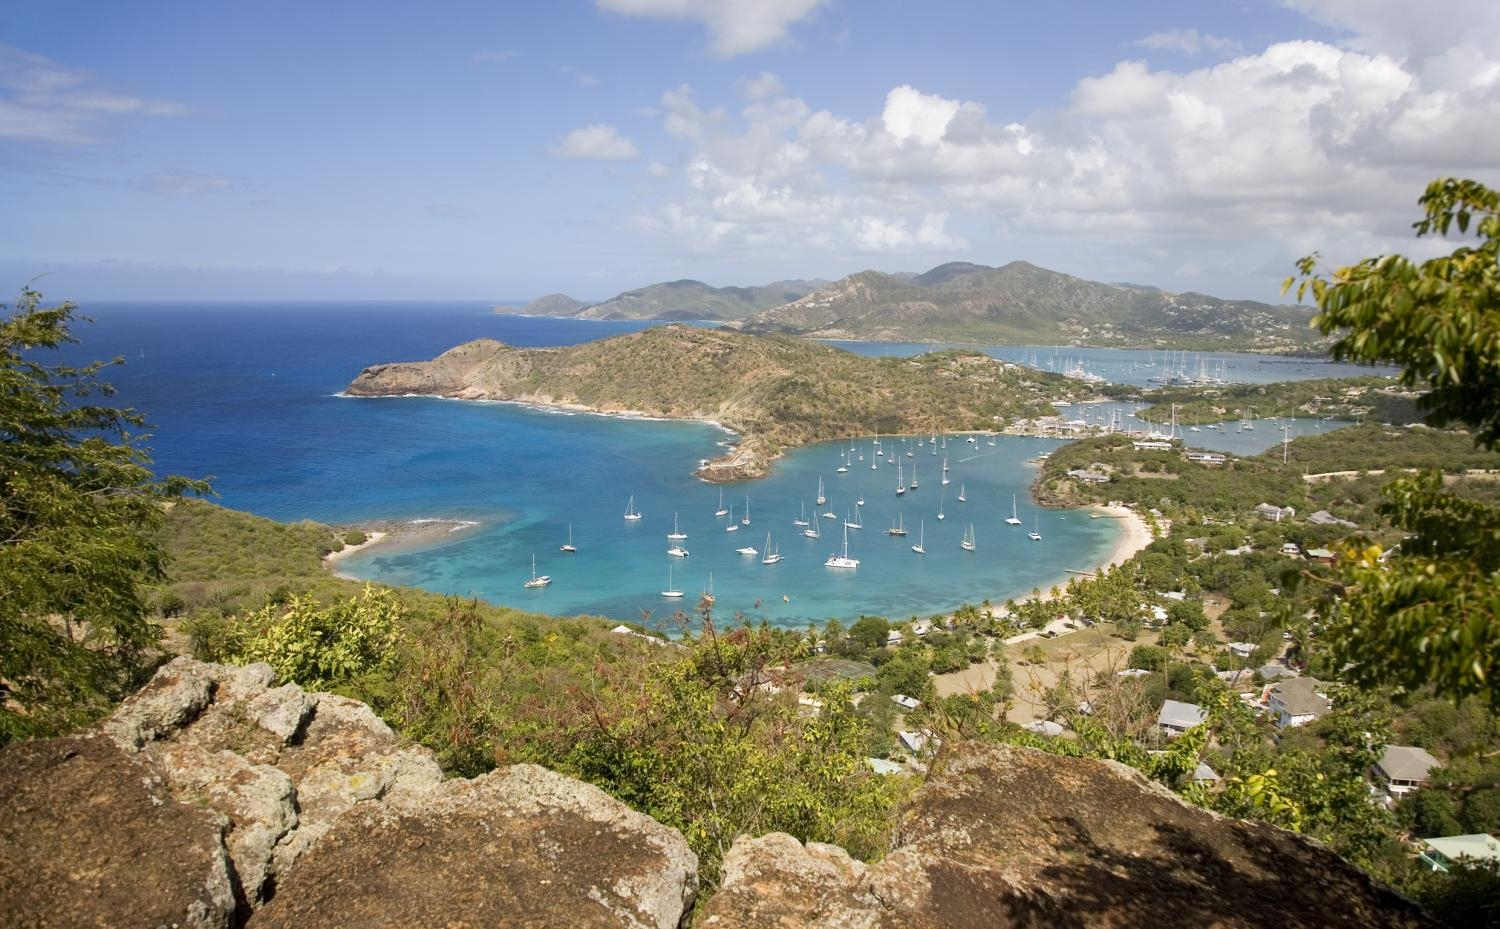 WELCOME TO VOYAGES ANTIGUA TOURS & SERVICES